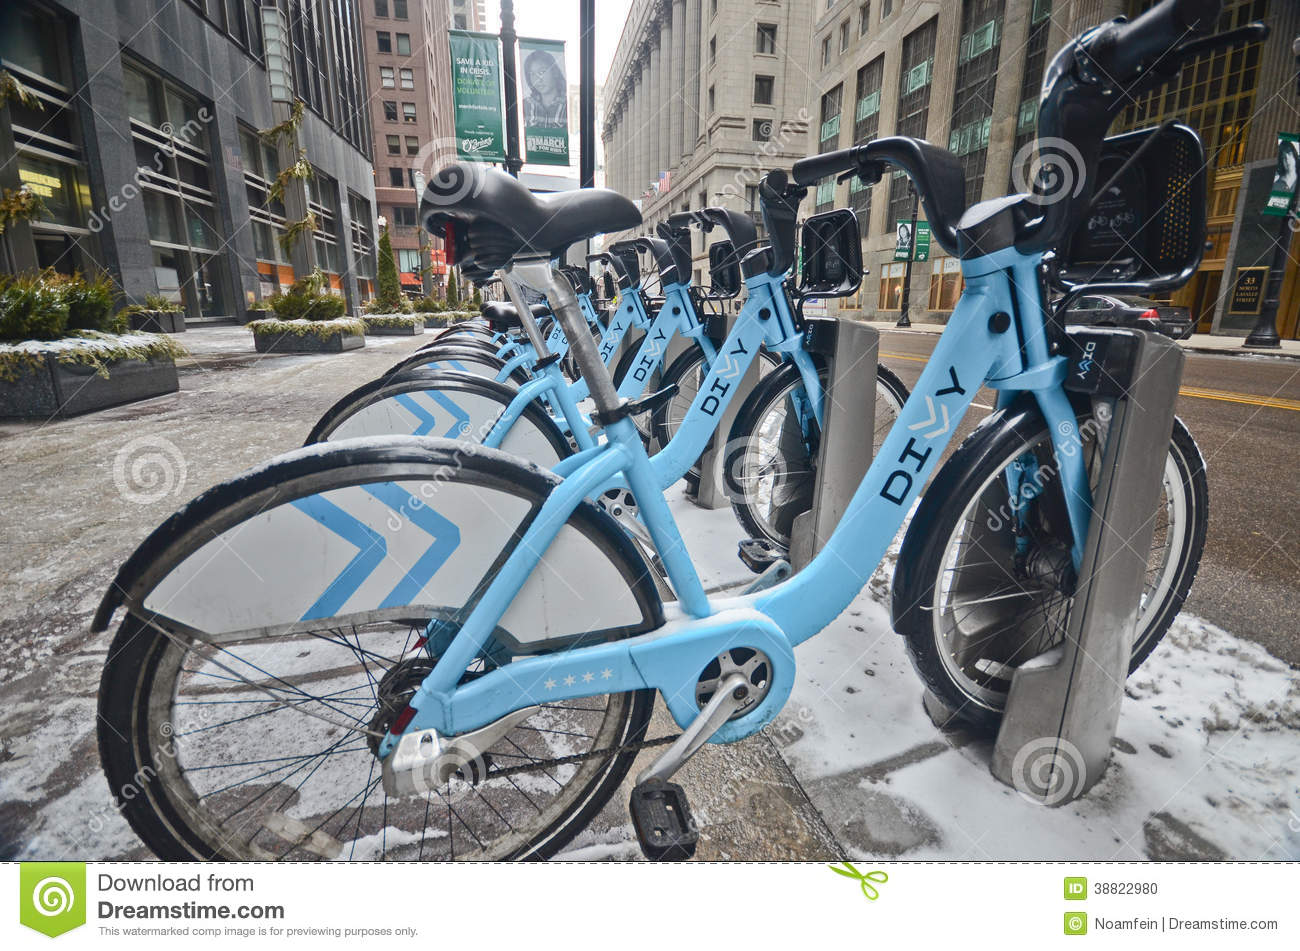 Bikes To Rent In Chicago Bicycle rent in Chicago